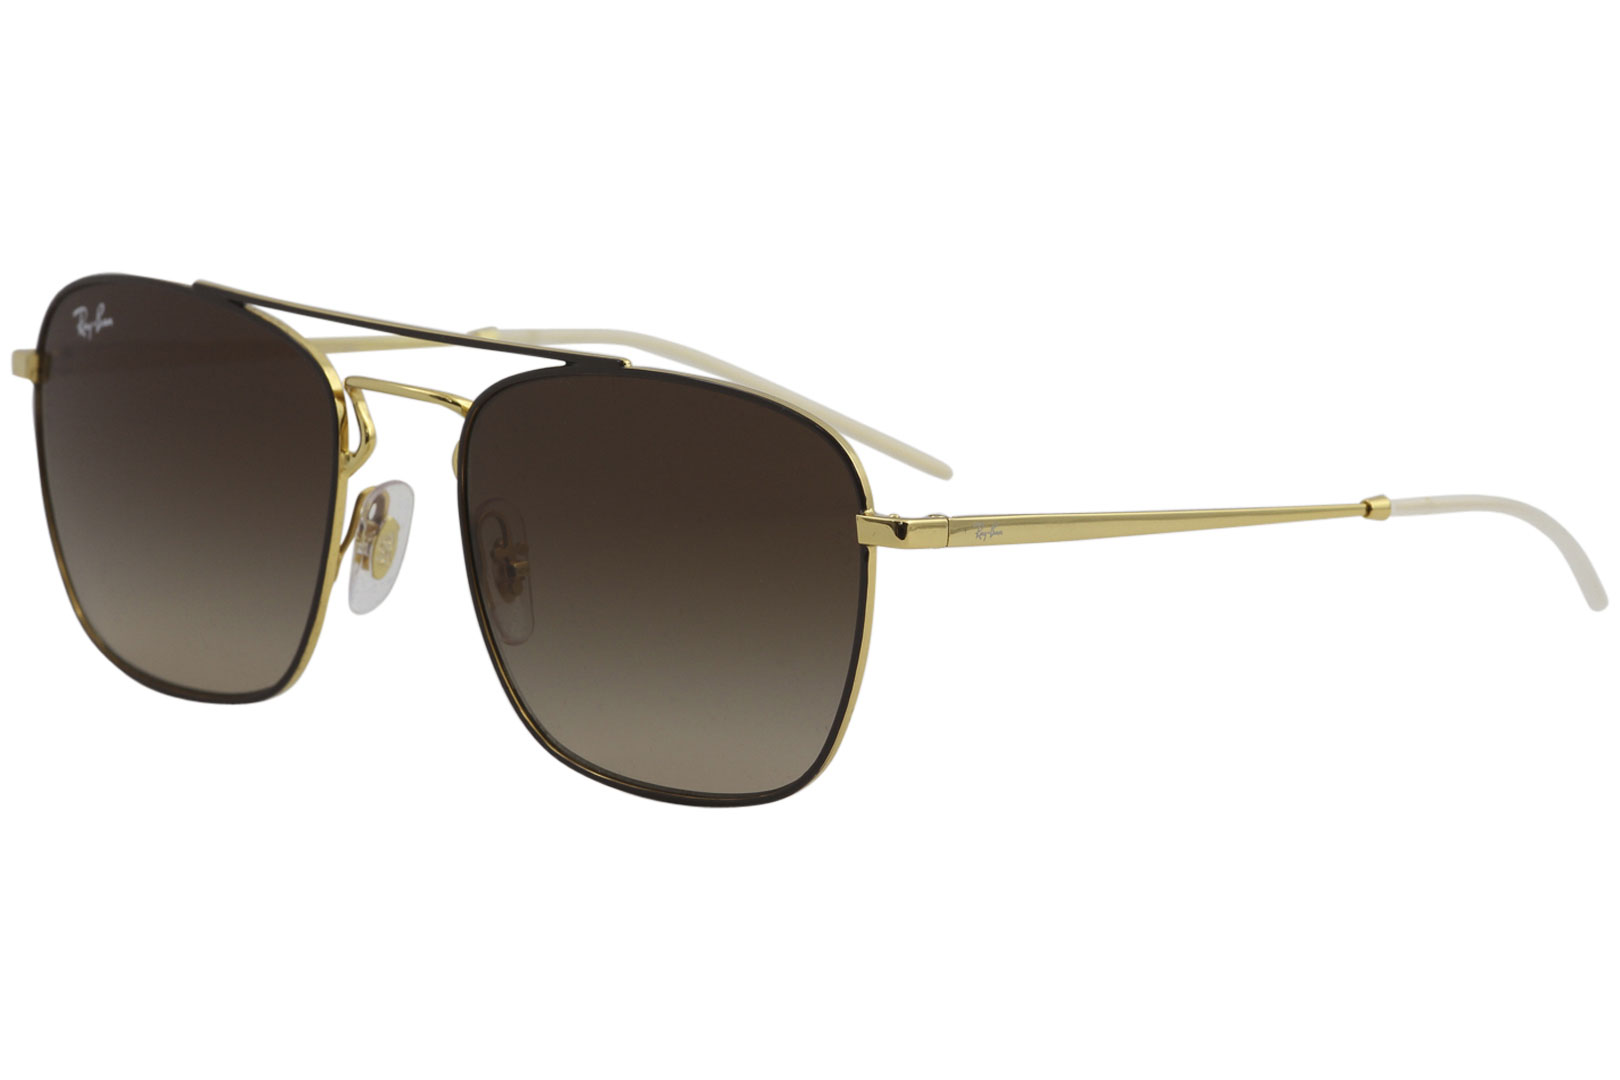 Ray Ban Men s RB3588 RB 3588 905513 Gold Brown RayBan Sunglasses ... cd9c2fc2dd